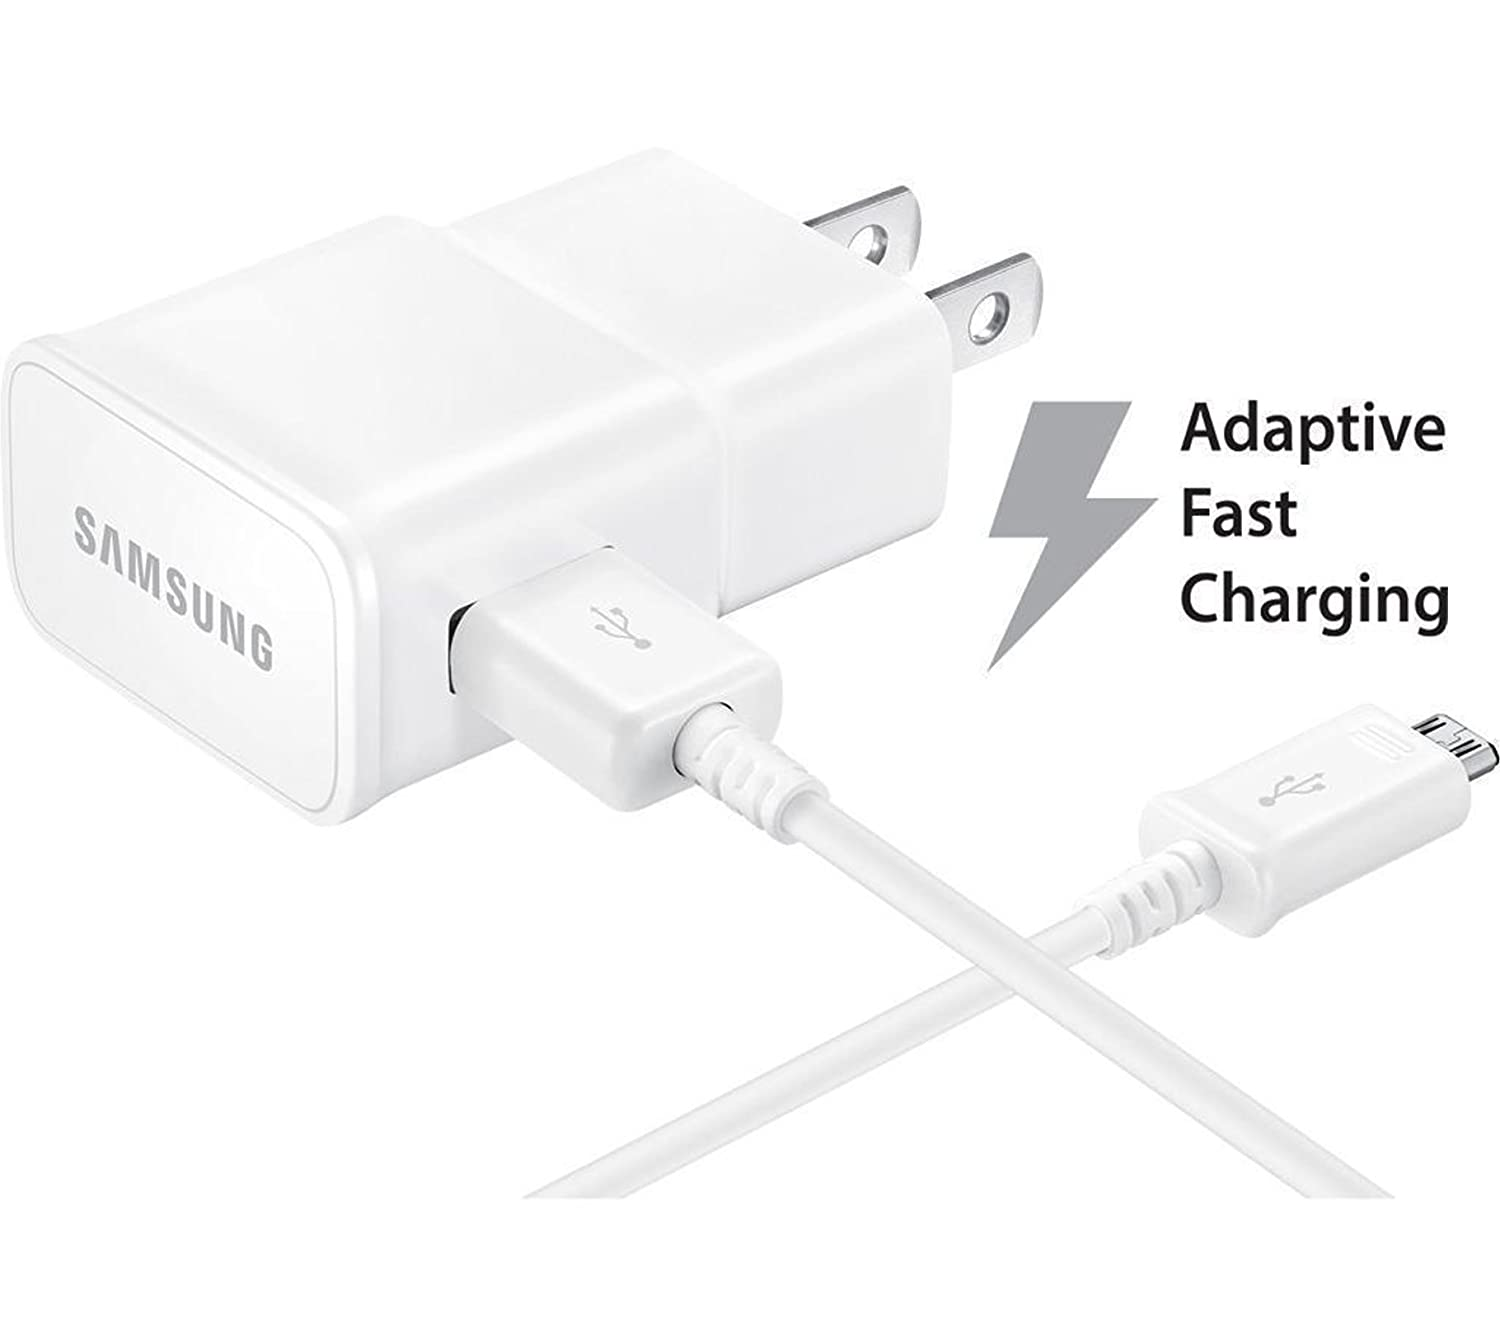 Samsung Galaxy Tab E 9.6 Adaptive Fast Charger Micro USB 2.0 Cable Kit! [1 Wall Charger + 5 FT Micro USB Cable] Adaptive Fast Charging uses Dual ...